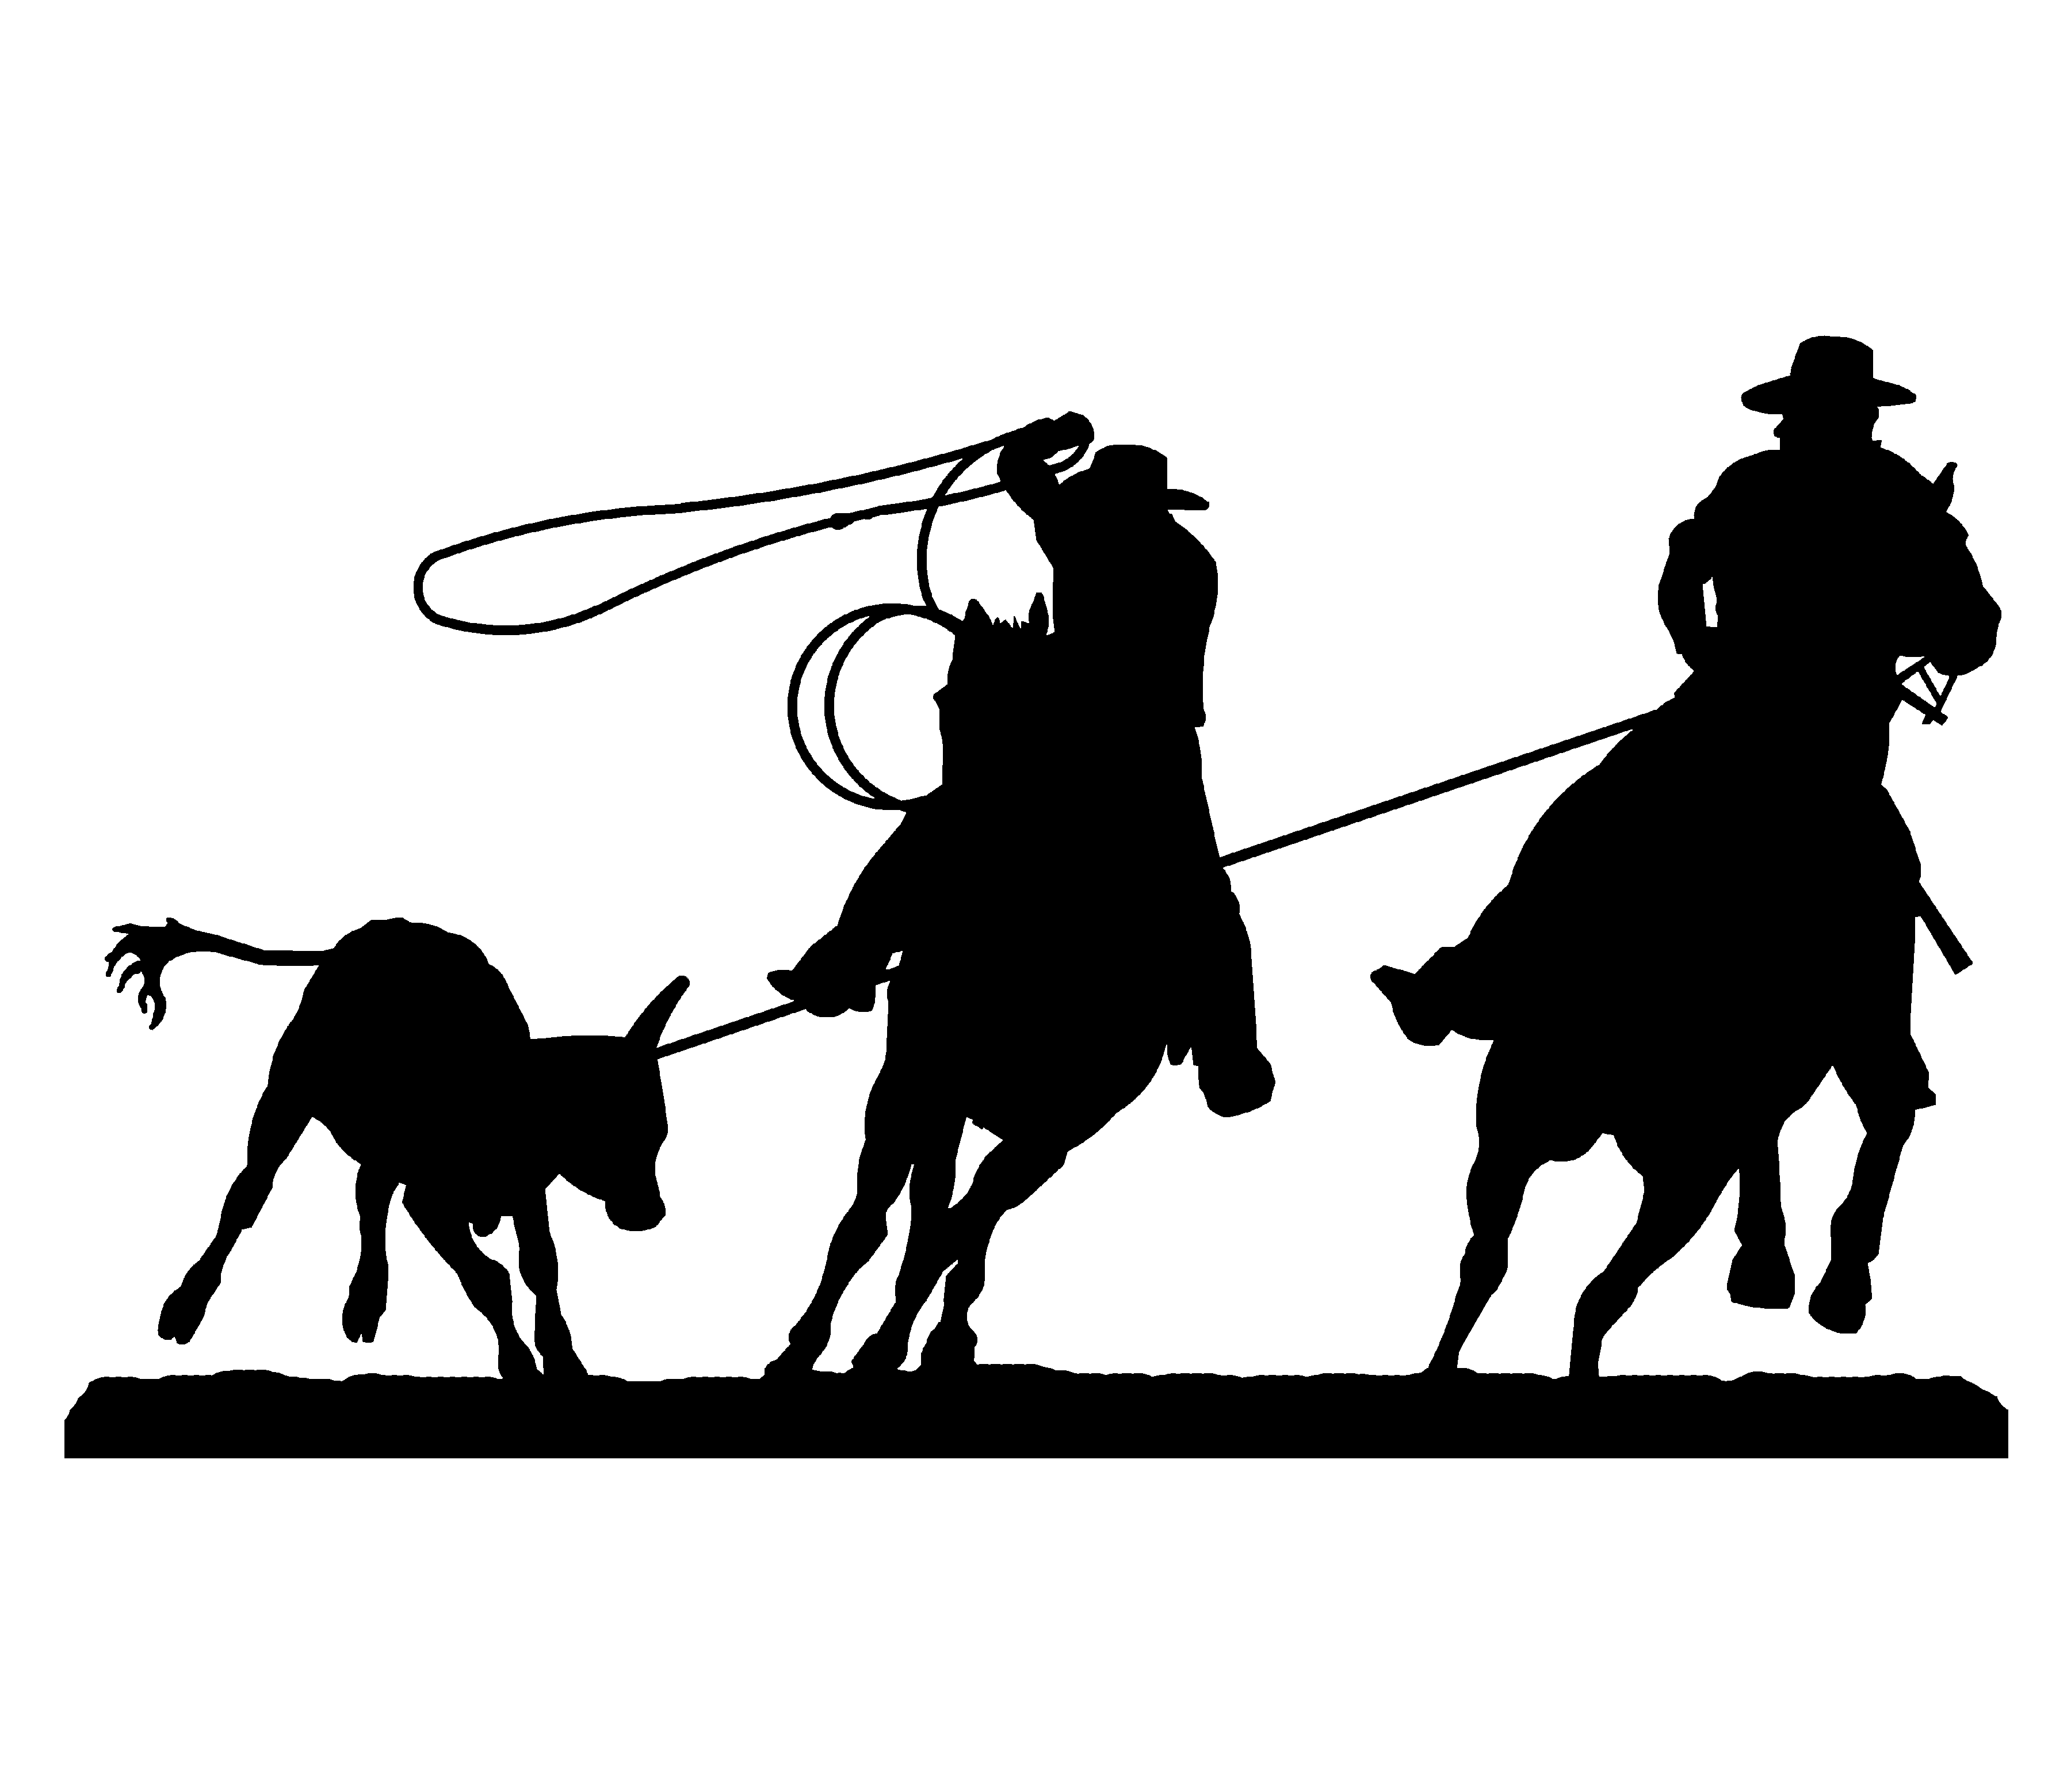 team roping silhouette embroidery designs silhouette pinterest rh pinterest com team roping clipart free Team Roping Stencil